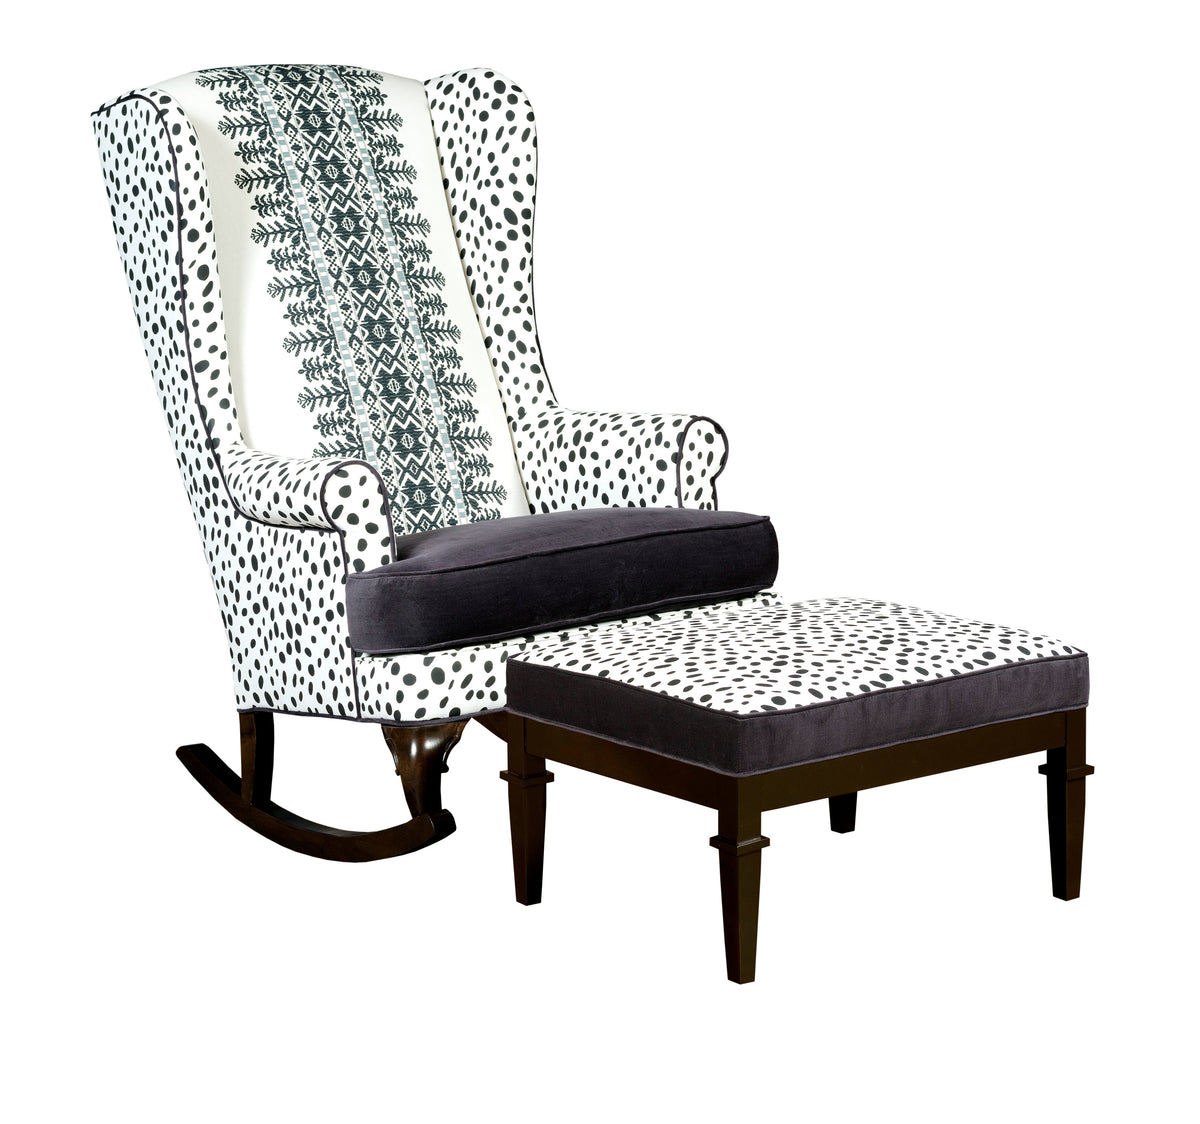 Bohemian Rocking Chair And Ottoman Combo Embroidered Spot Print Traditional  Nursery Decor